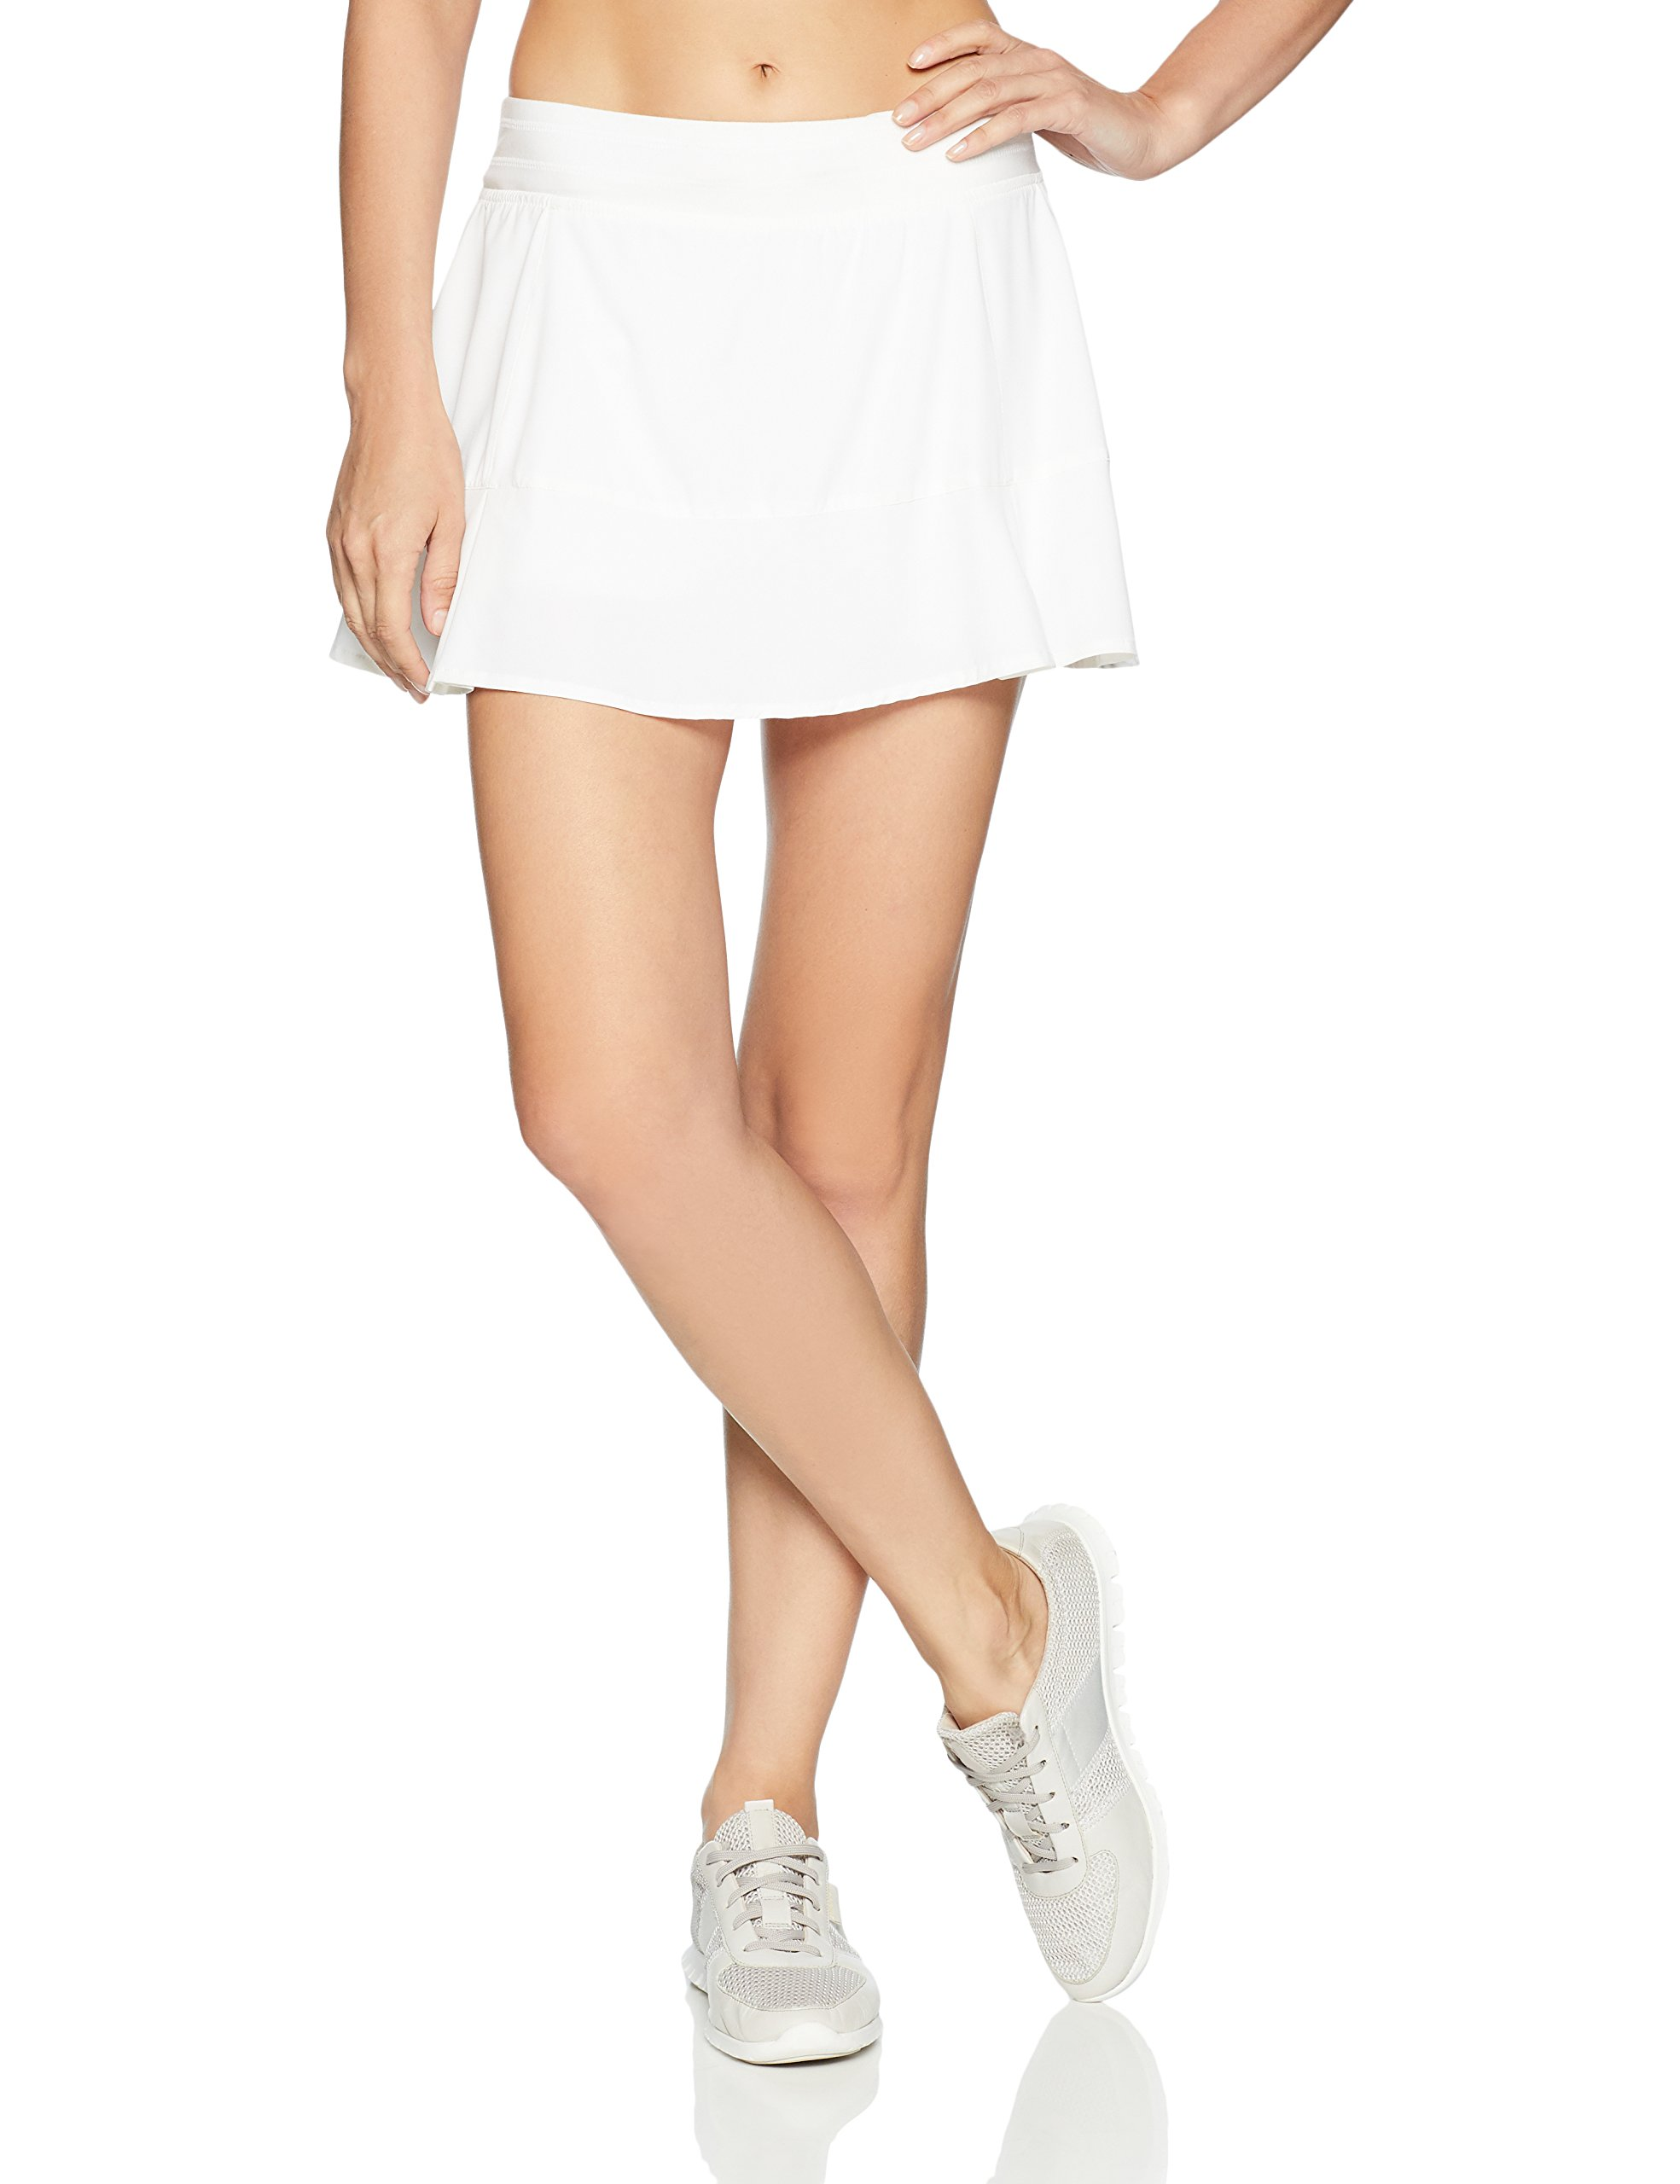 tasc Performance Rhythm Skirt, White, Large by tasc Performance